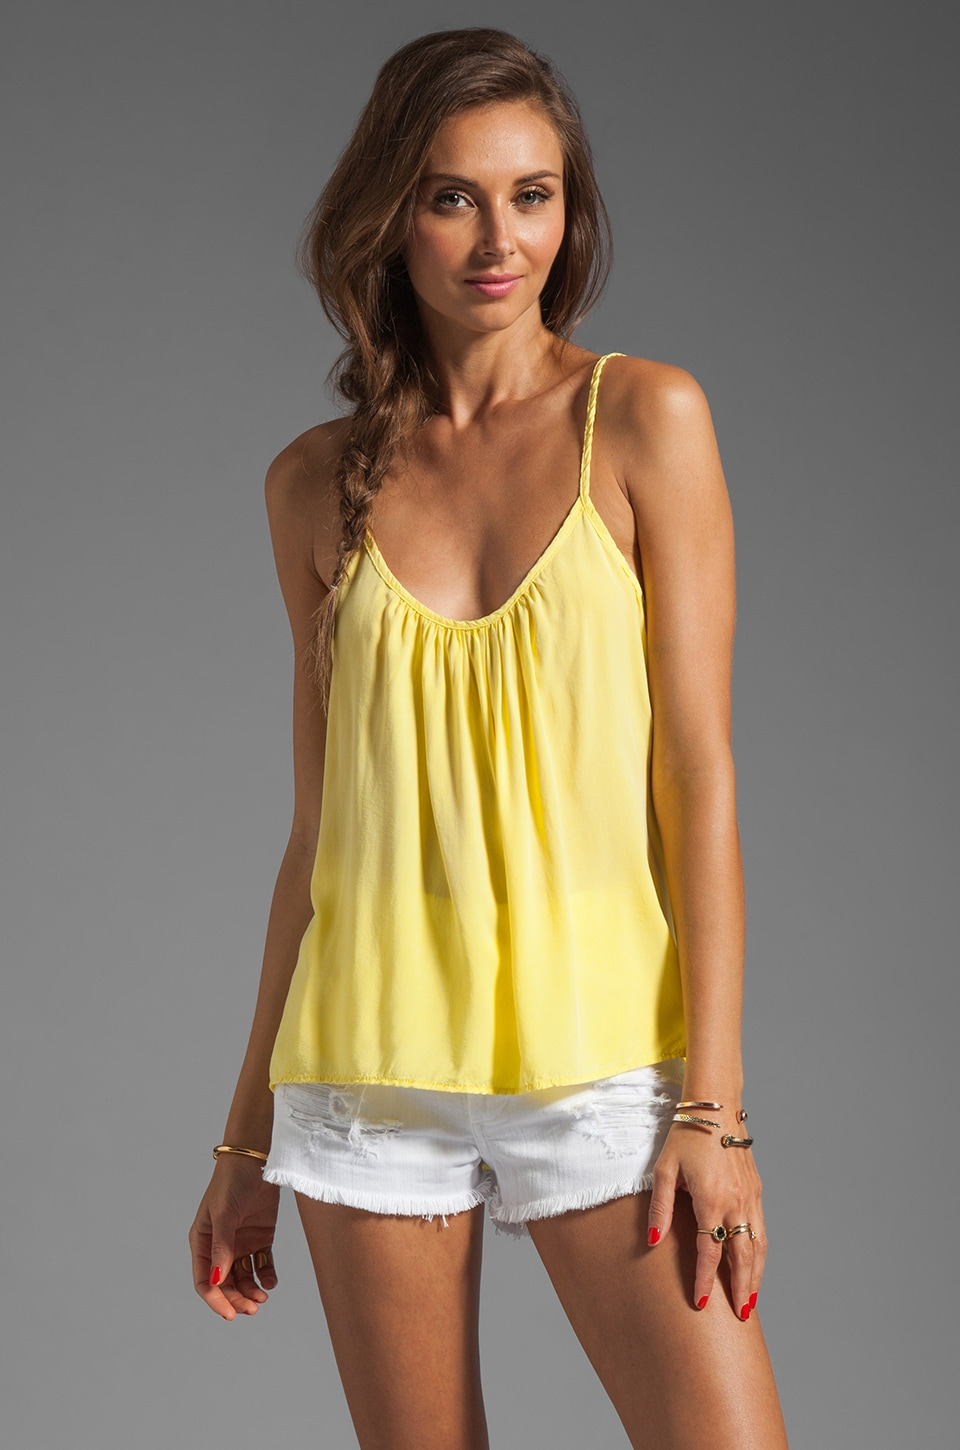 SAM&LAVI Derant Tank in Light Yellow